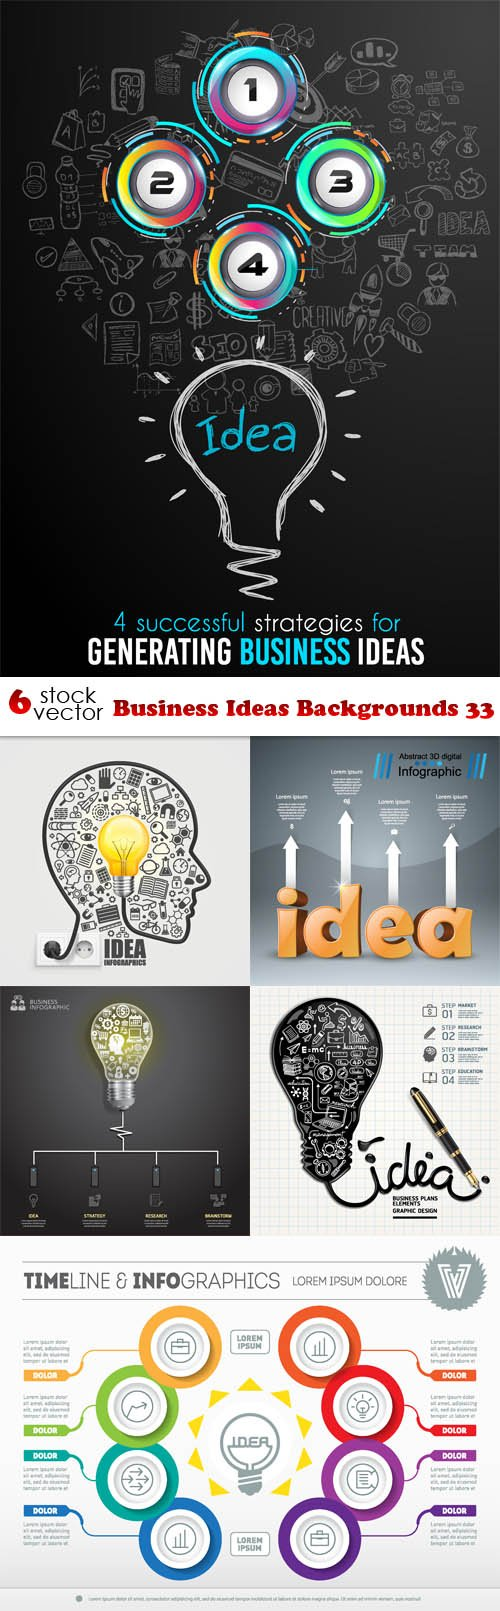 Vectors - Business Ideas Backgrounds 33